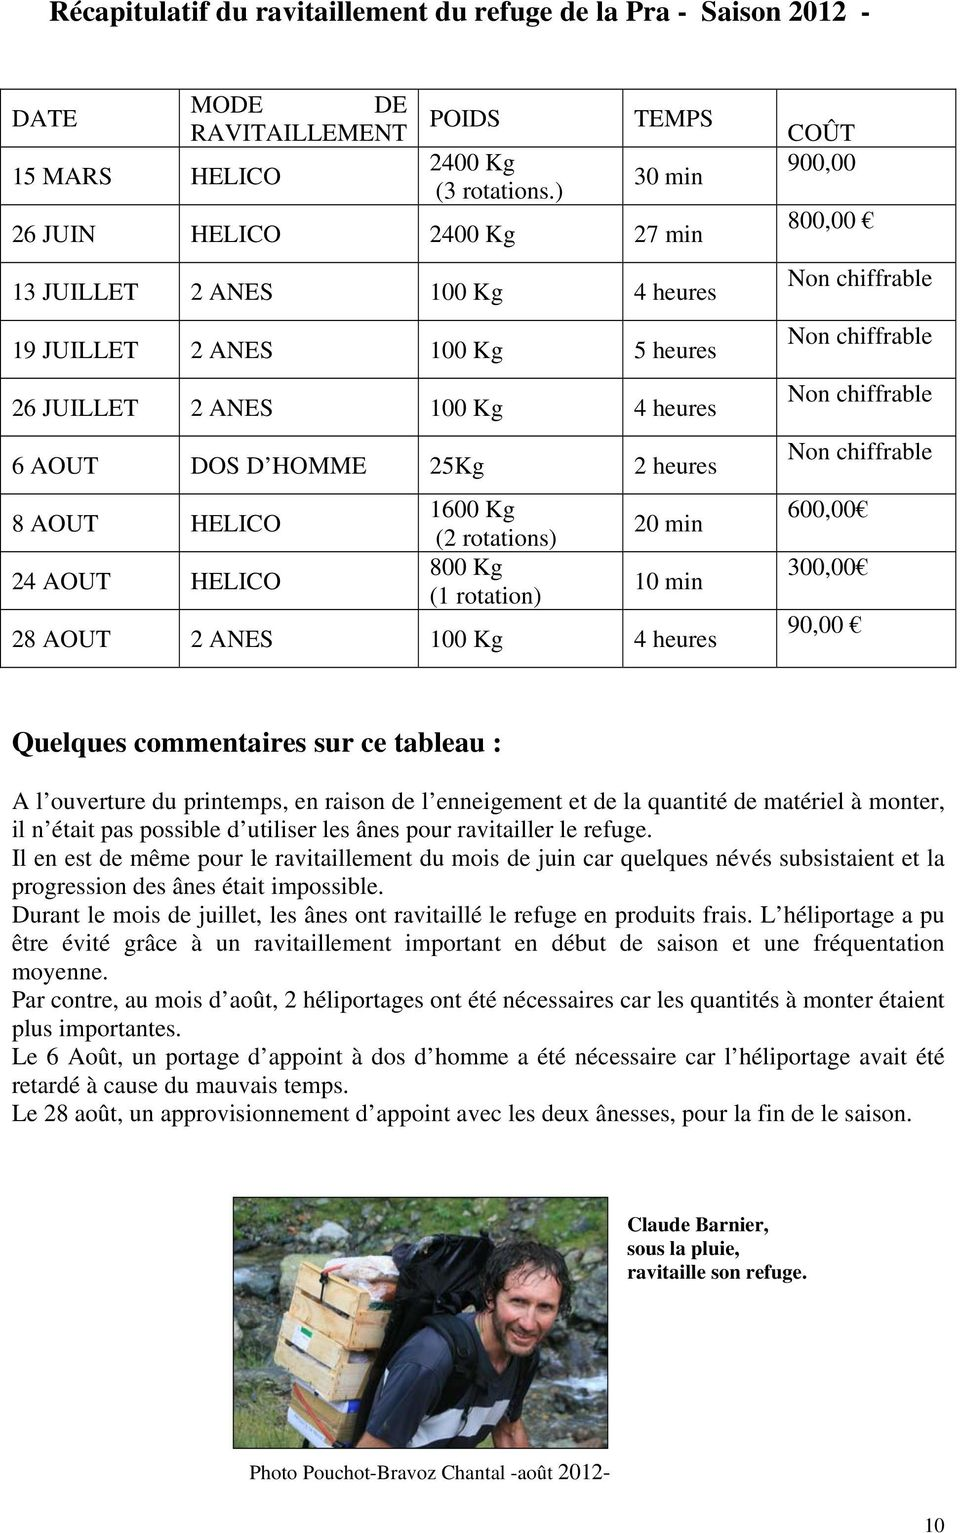 HELICO 1600 Kg (2 rotations) 800 Kg (1 rotation) 20 min 10 min 28 AOUT 2 ANES 100 Kg 4 heures Non chiffrable Non chiffrable Non chiffrable Non chiffrable 600,00 300,00 90,00 Quelques commentaires sur